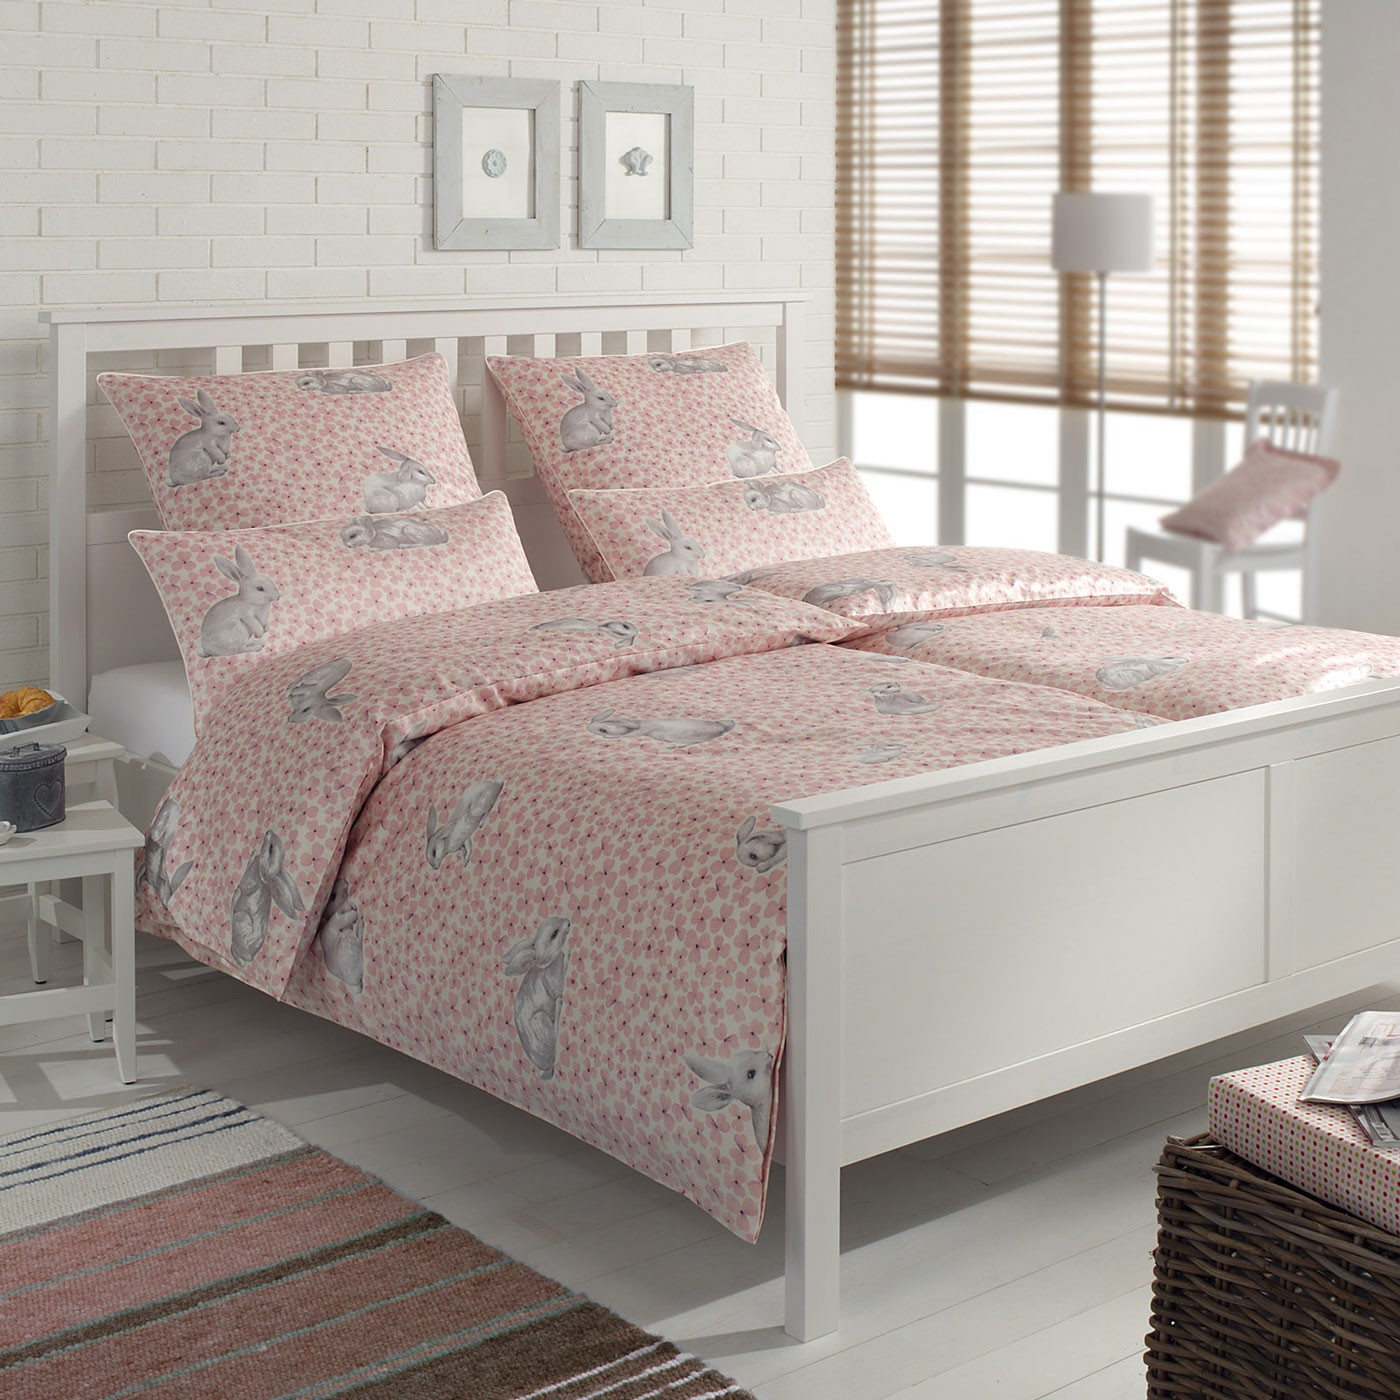 bettw sche elegante bunny 2081 rose. Black Bedroom Furniture Sets. Home Design Ideas